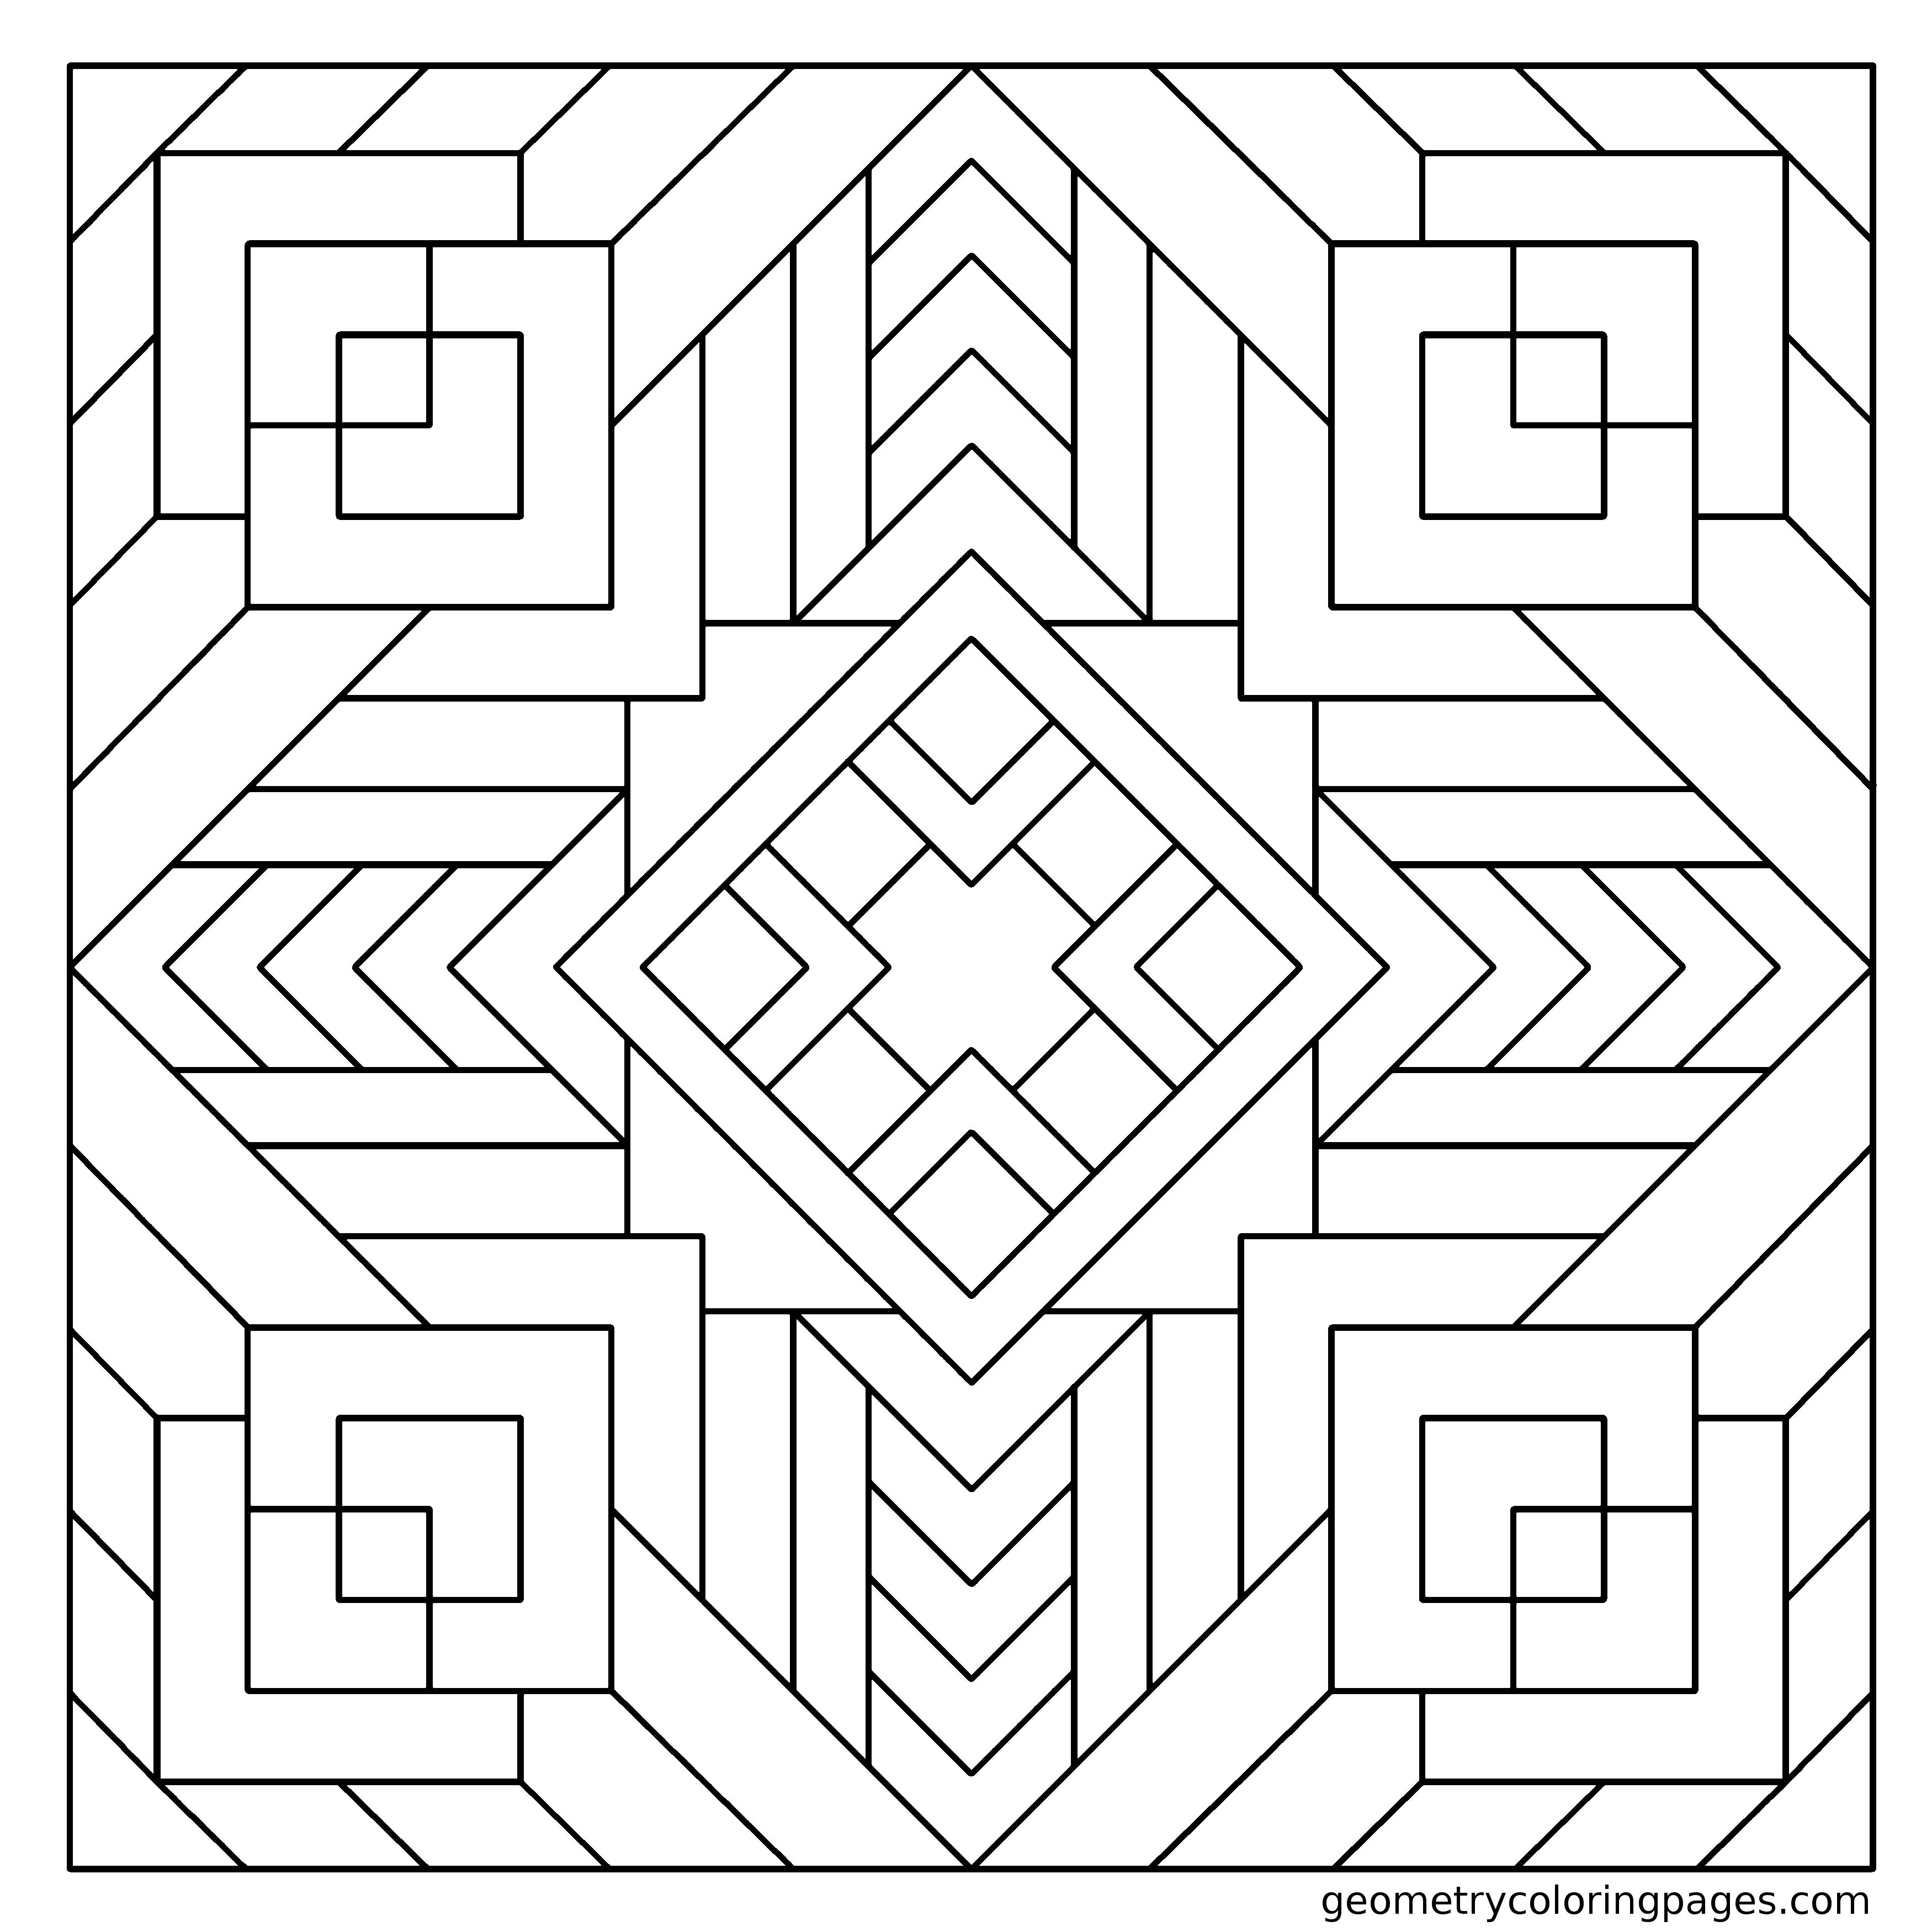 Pin By Jamar Johnson On To Color Geometric Coloring Pages Pattern Coloring Pages Mandala Coloring Pages